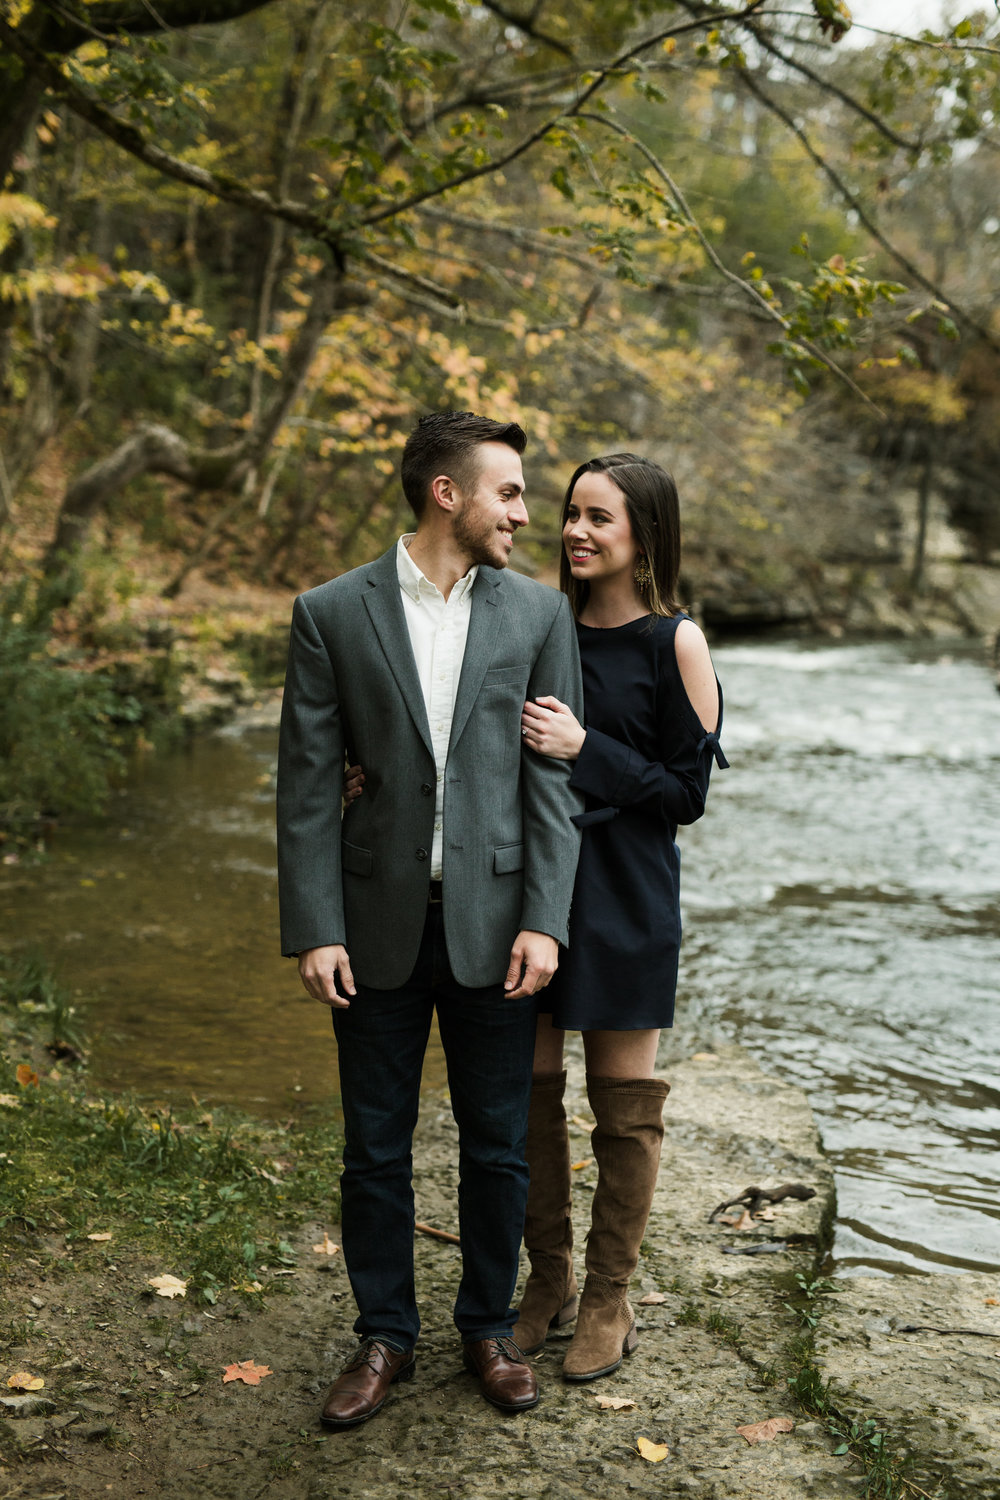 Kelsey and Daniel Engagement 2018 Crystal Ludwick Photo Louisville Wedding Photographer Kentucky Wedding Photographer (26 of 31).jpg